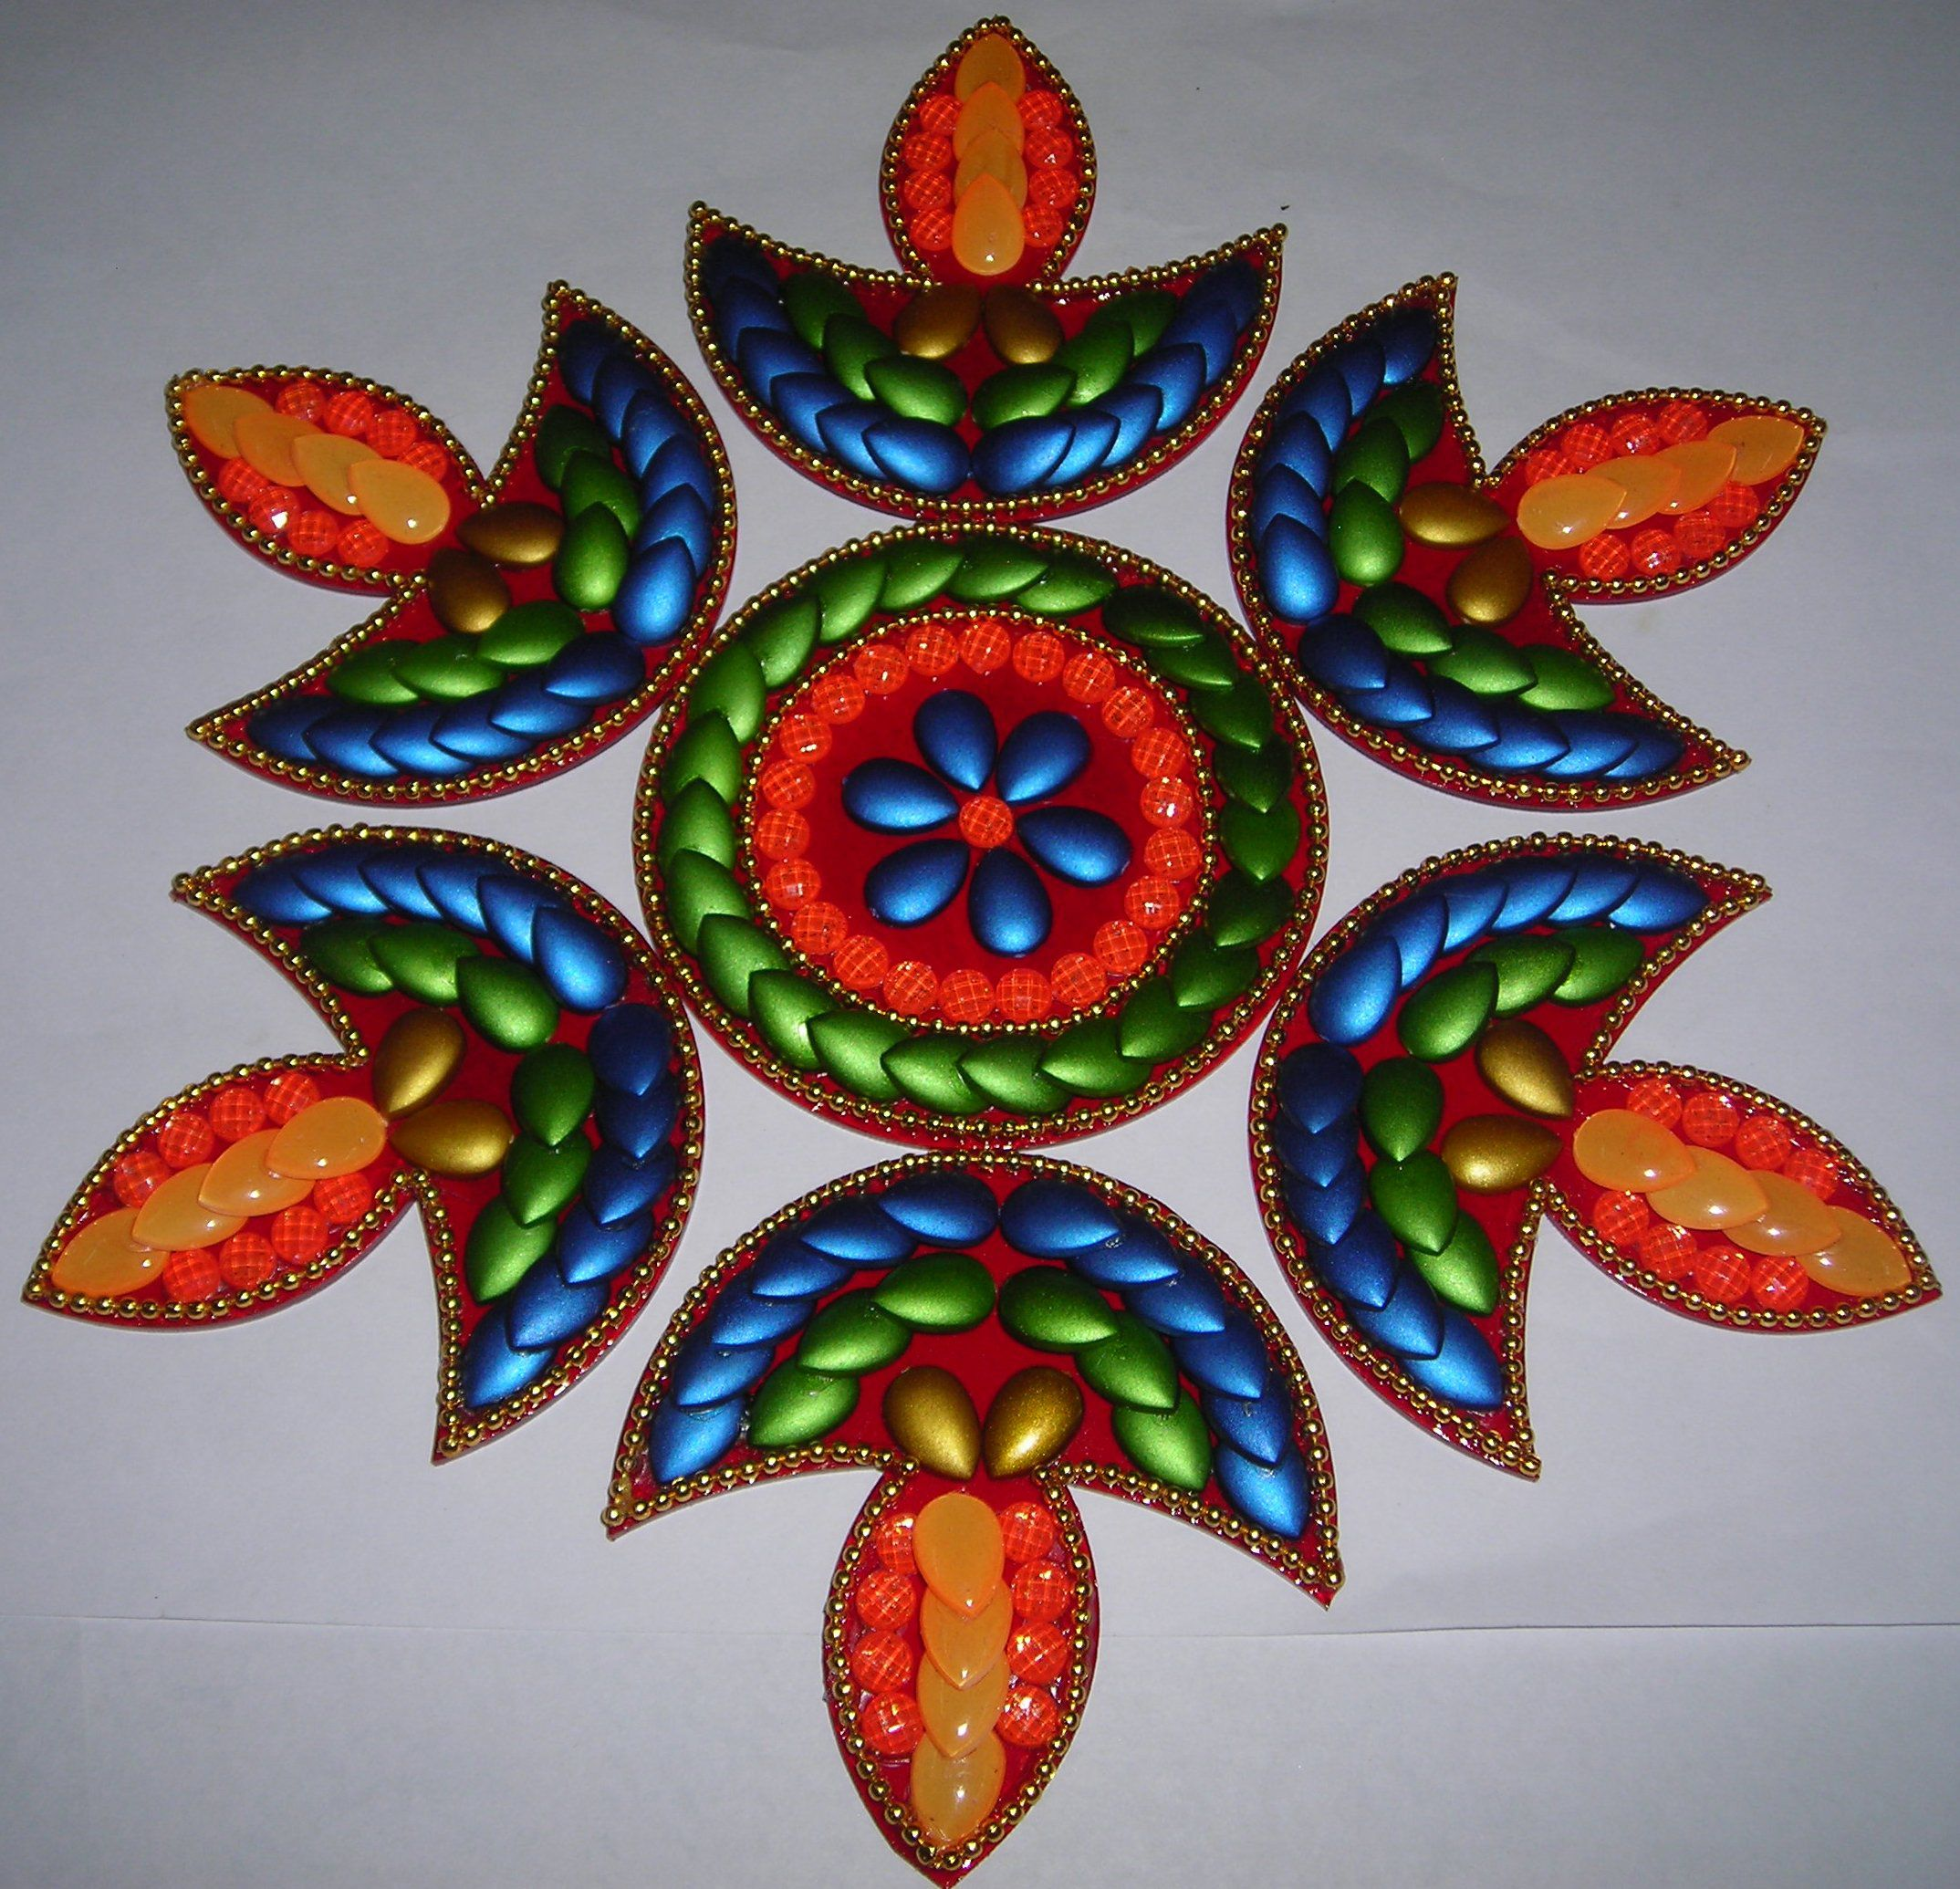 Poster design rangoli - Find This Pin And More On Acrylic Rangoli Designs For Diwali By Festivalpedia